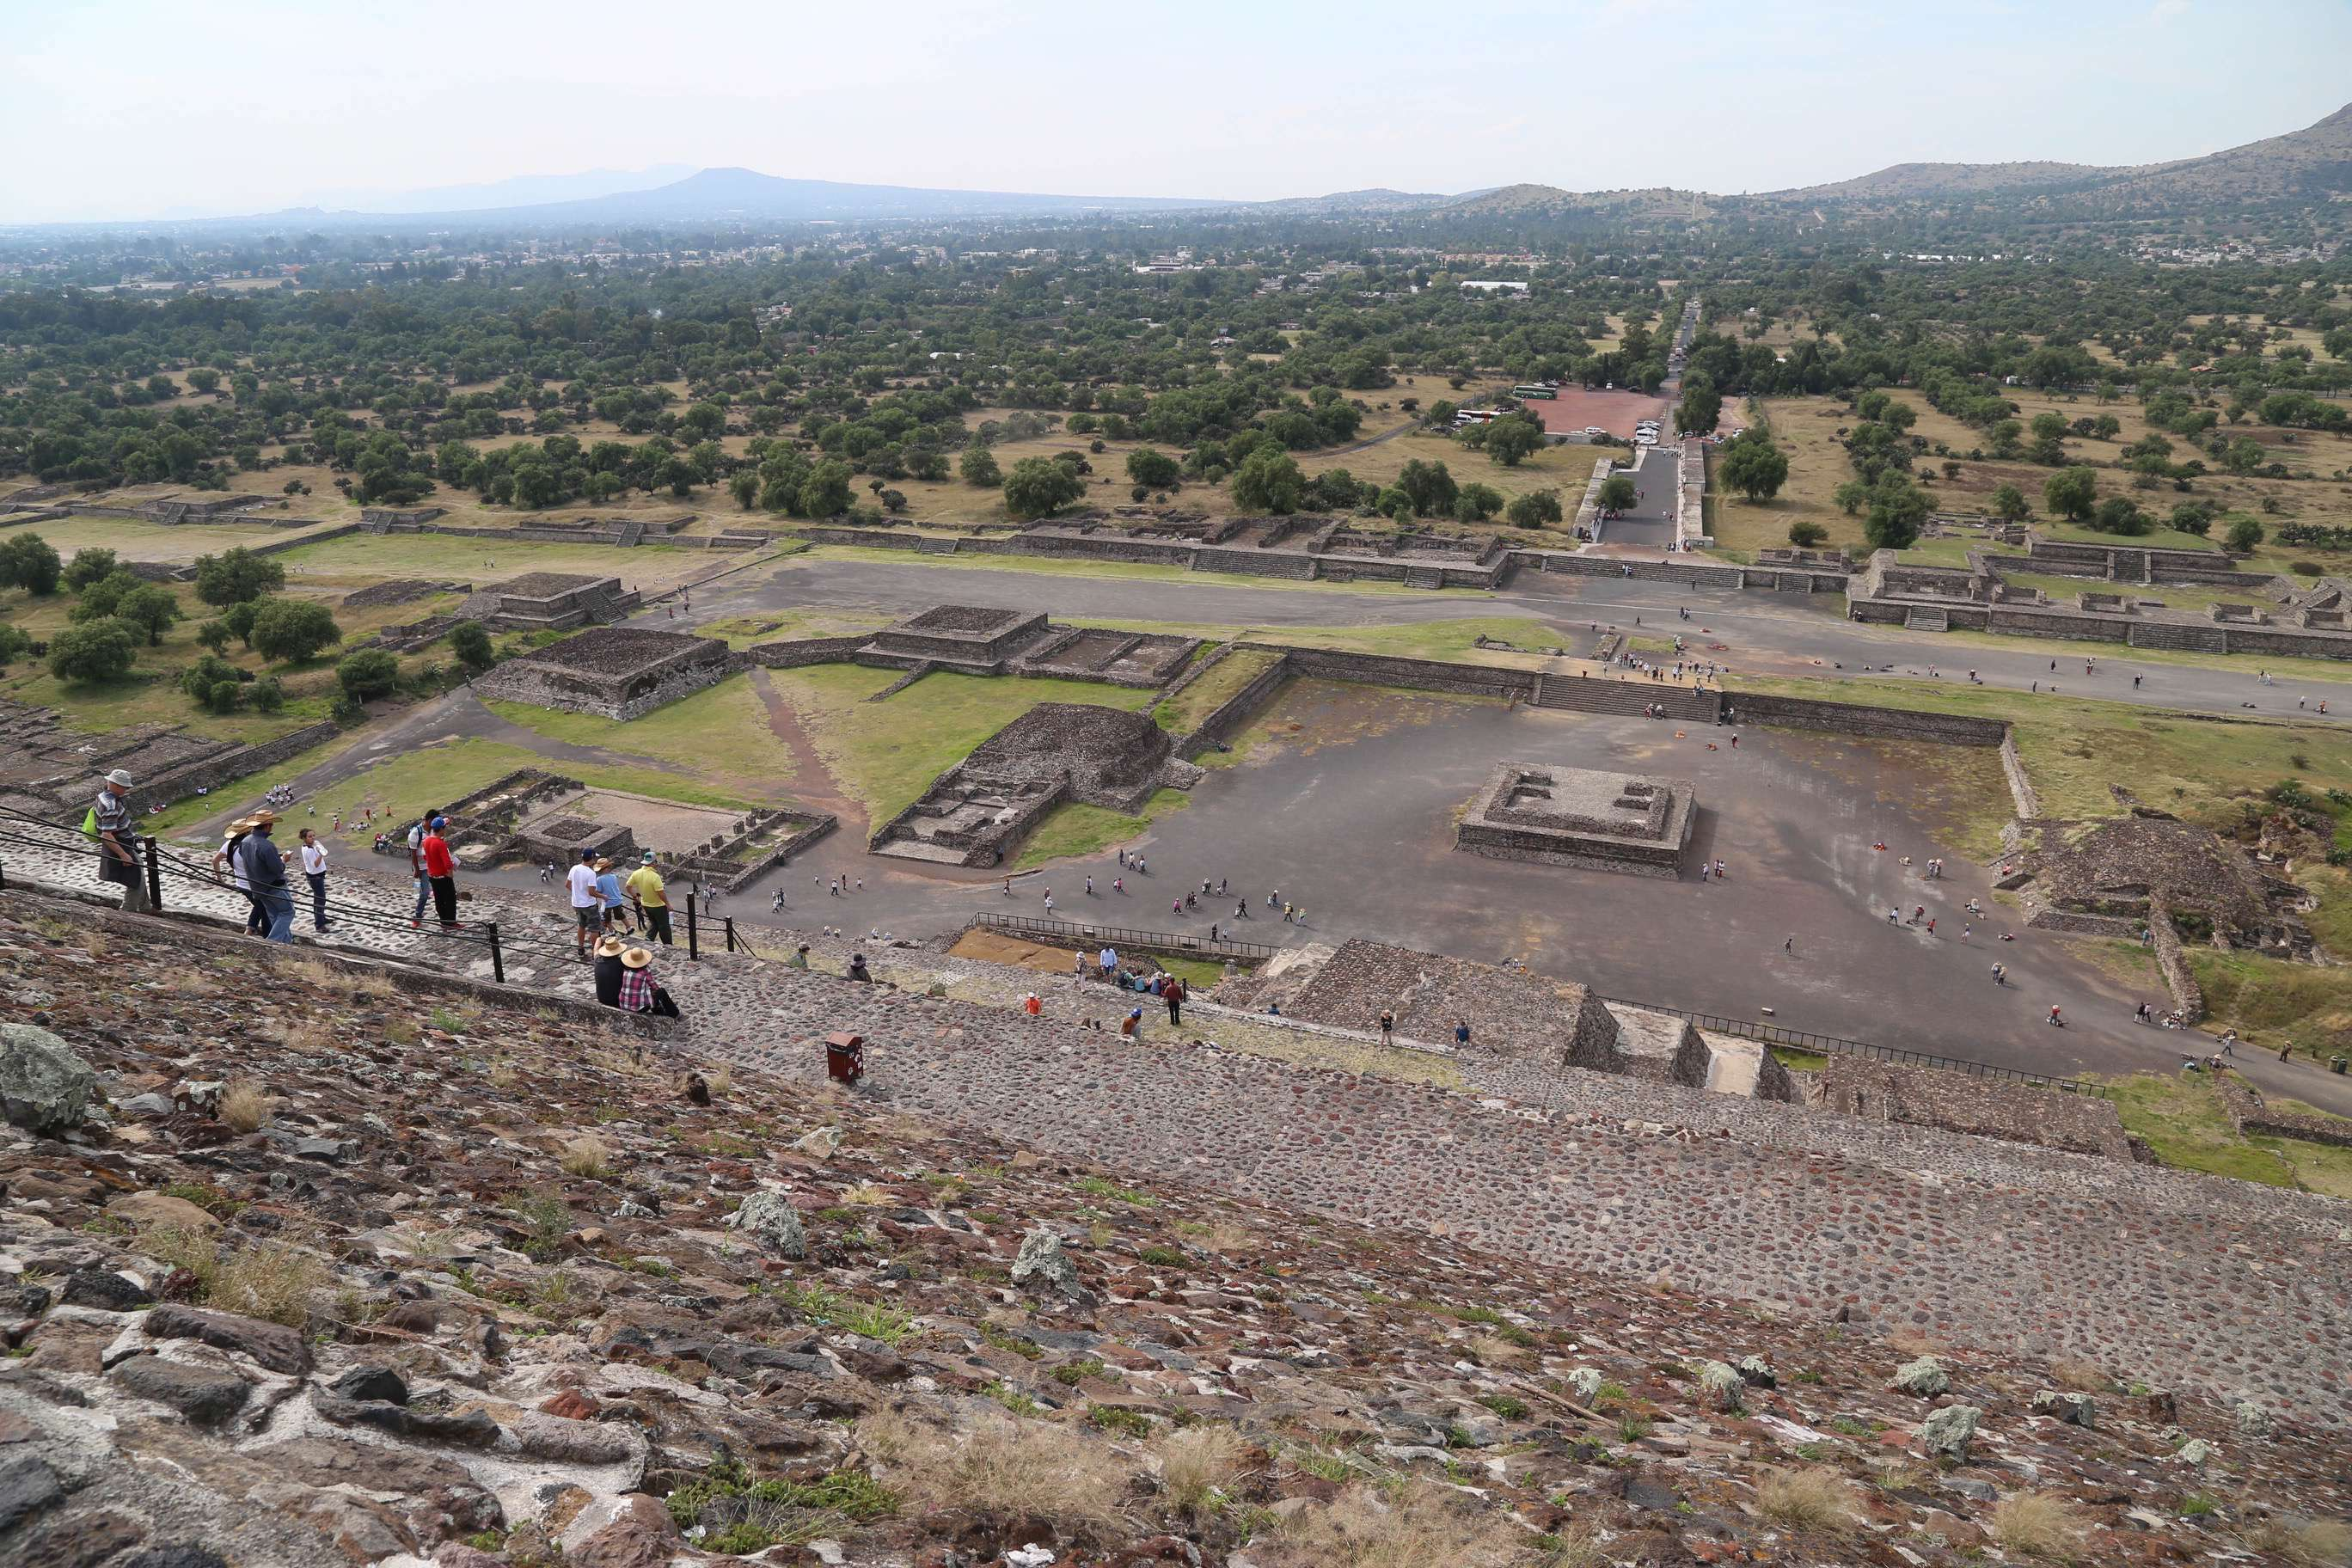 The great mysteries of Teotihuacan are who built this amazing site and why was it abandoned keeps archeologists digging for answers.